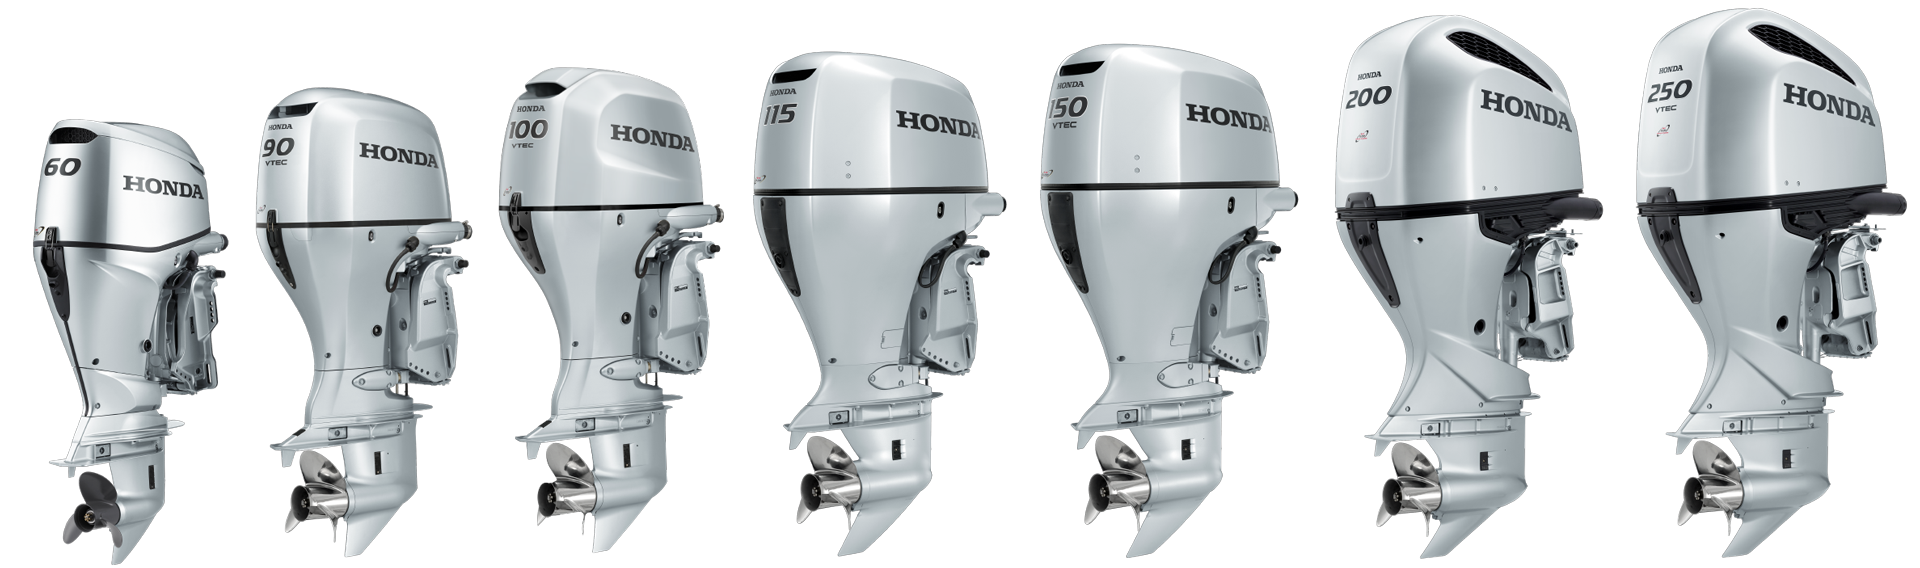 Victormax 2019 Honda Outboard Engines